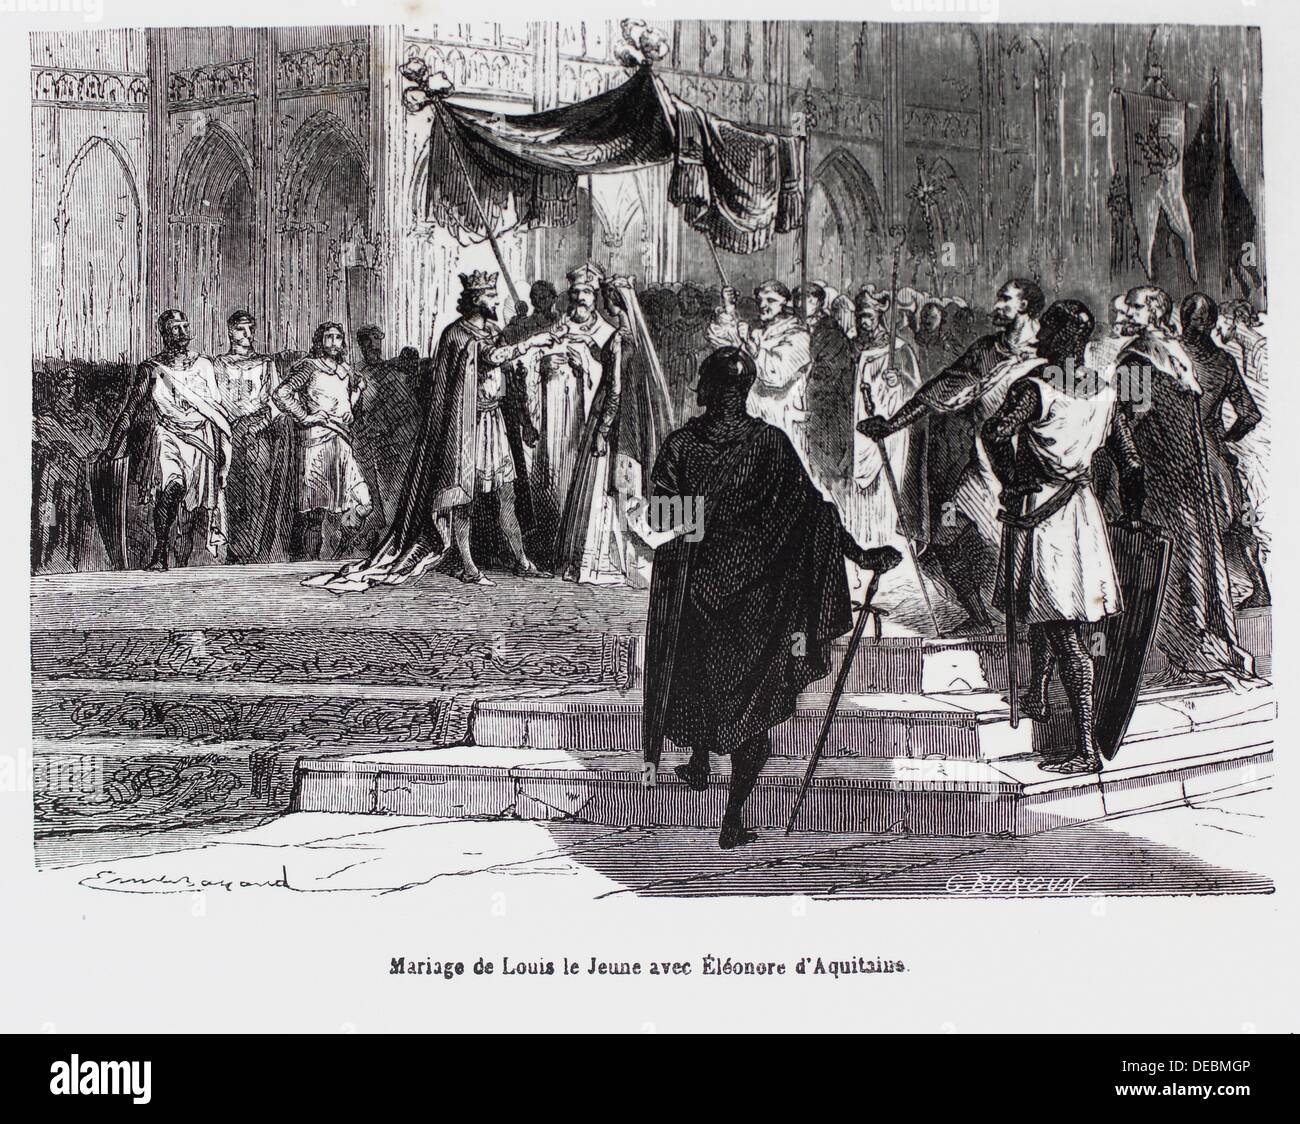 France-History- ´ Mariage de Louis le Jeune avec Ëléonore d´Aquitaine´ - Louis VII called the Younger or the Young French: - Stock Image